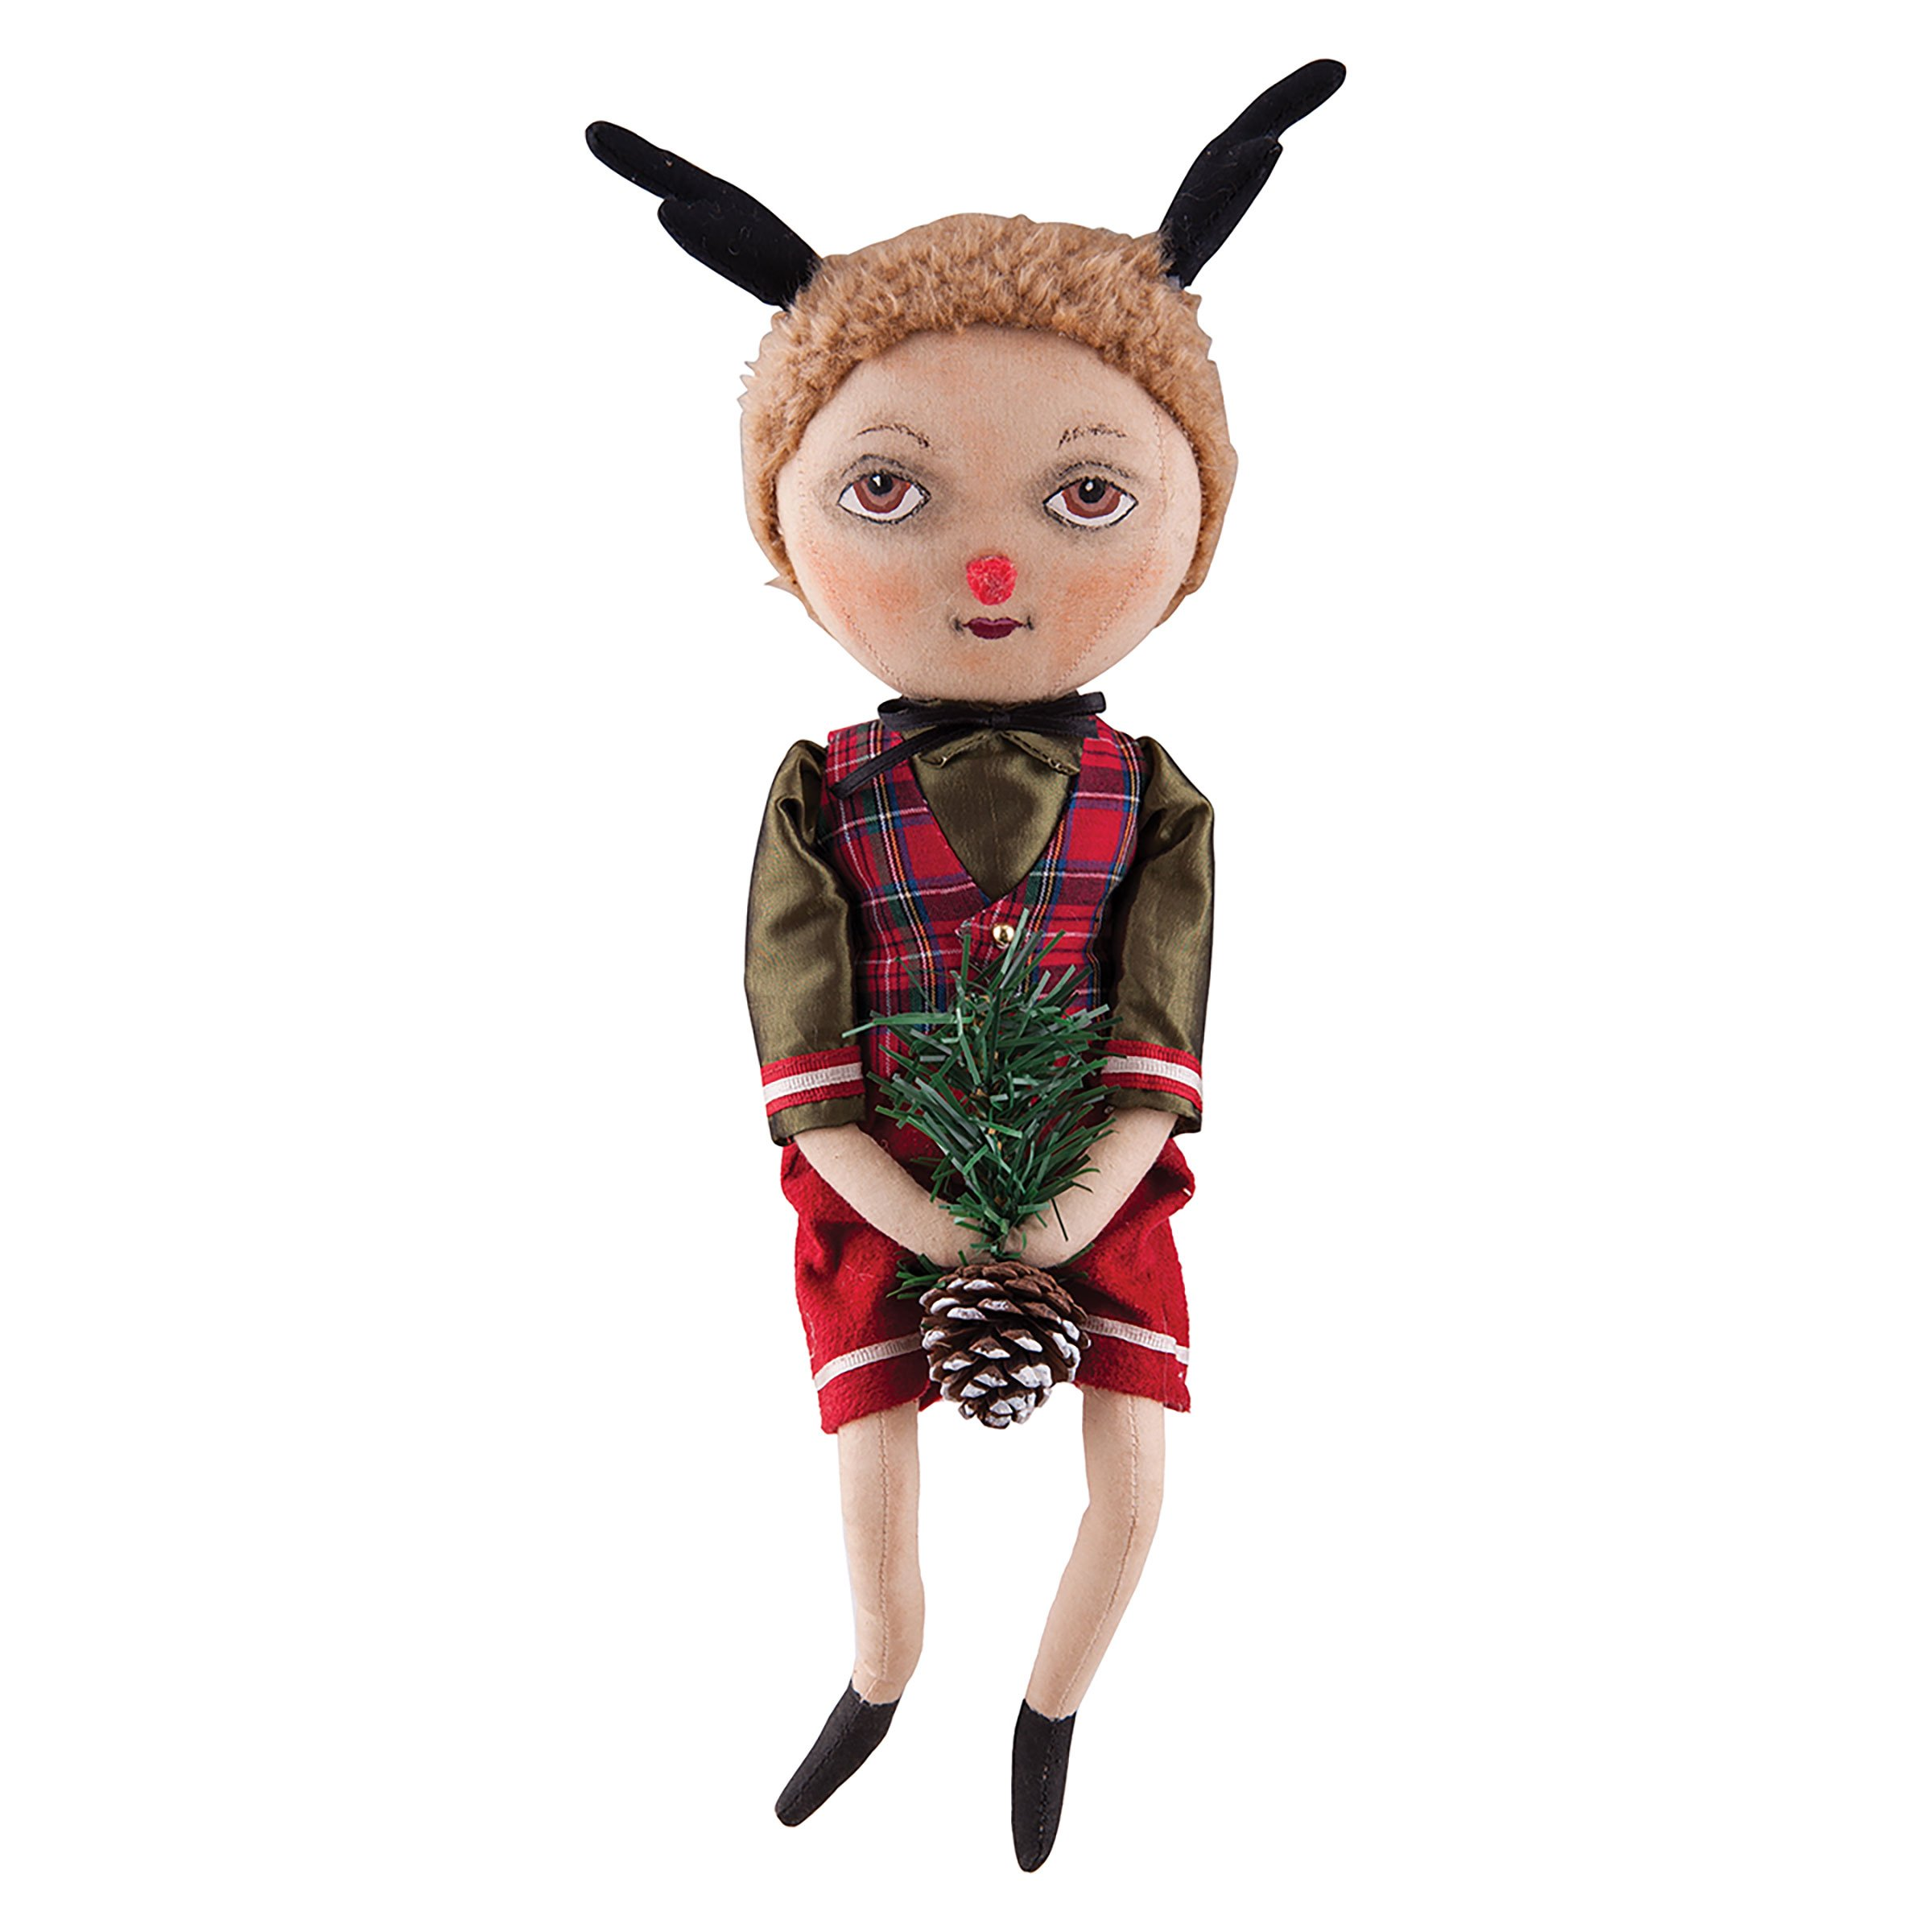 Fabric Figure Dudley Reindeer Boy Doll, 14-in.